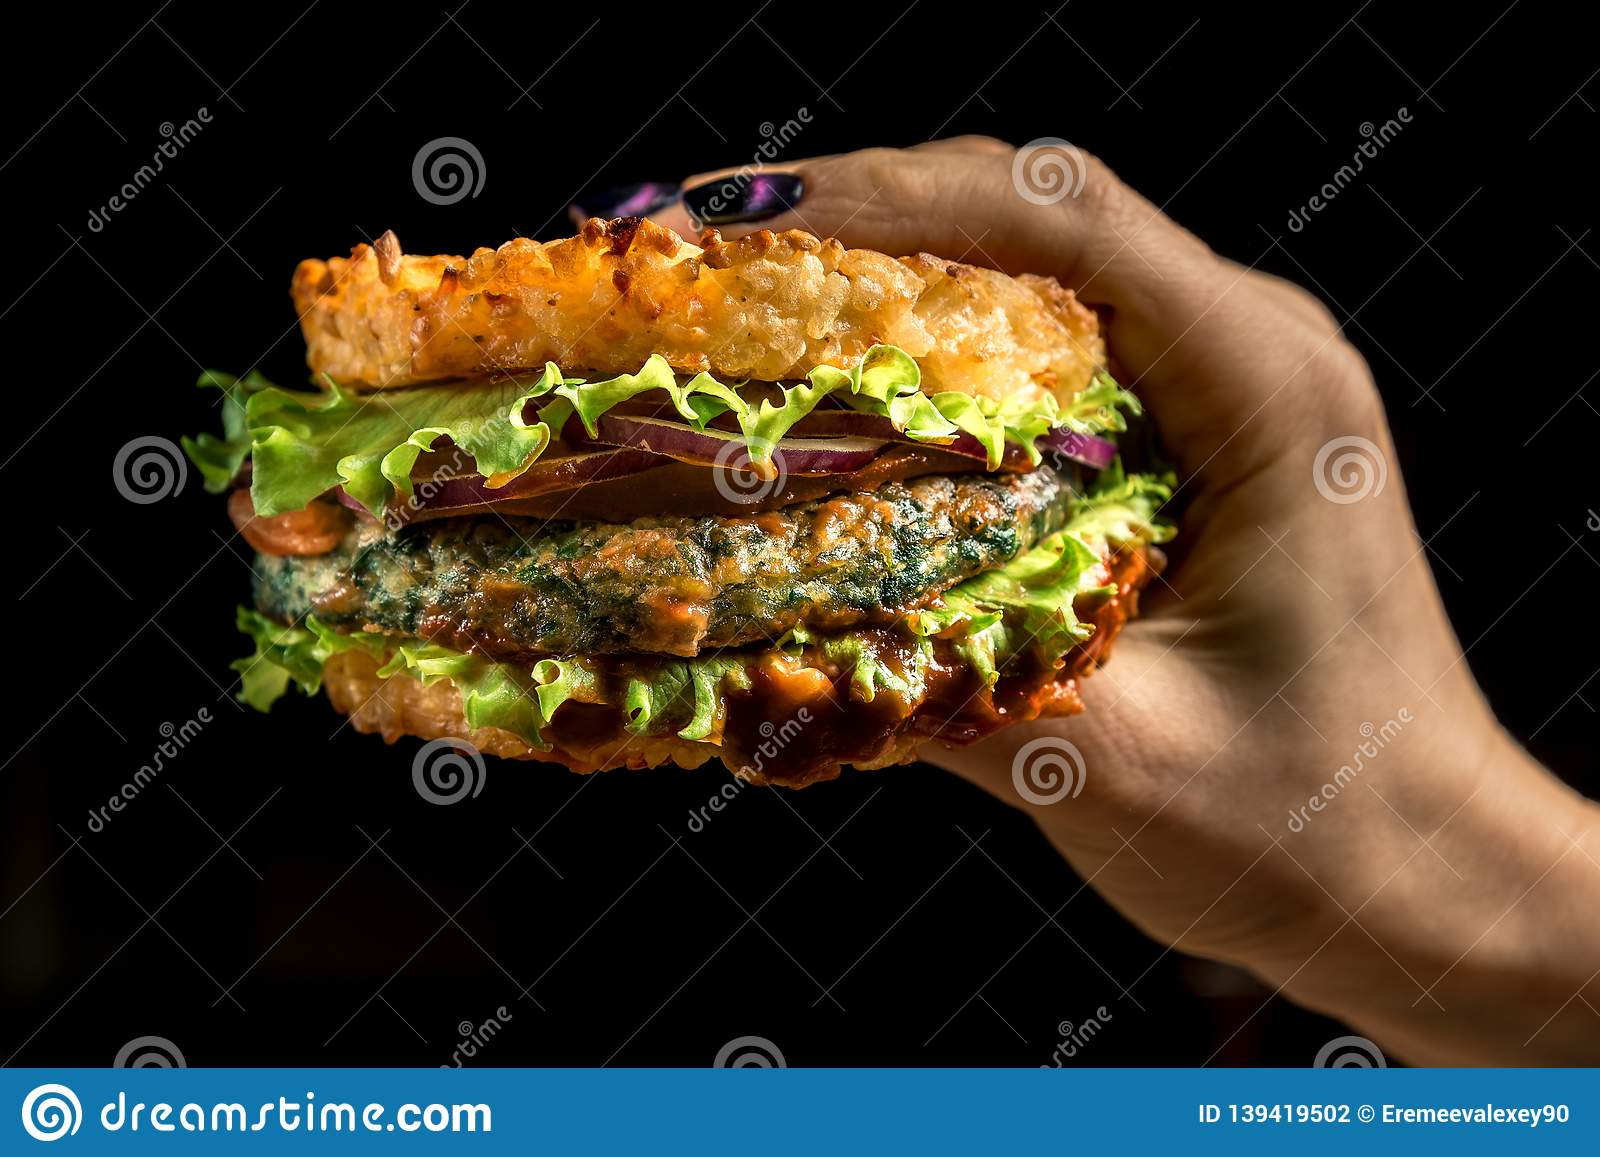 Healthy lifestyle, proper nutrition. Healthy rice burger with vegetables, herbs and cutlet in female hands